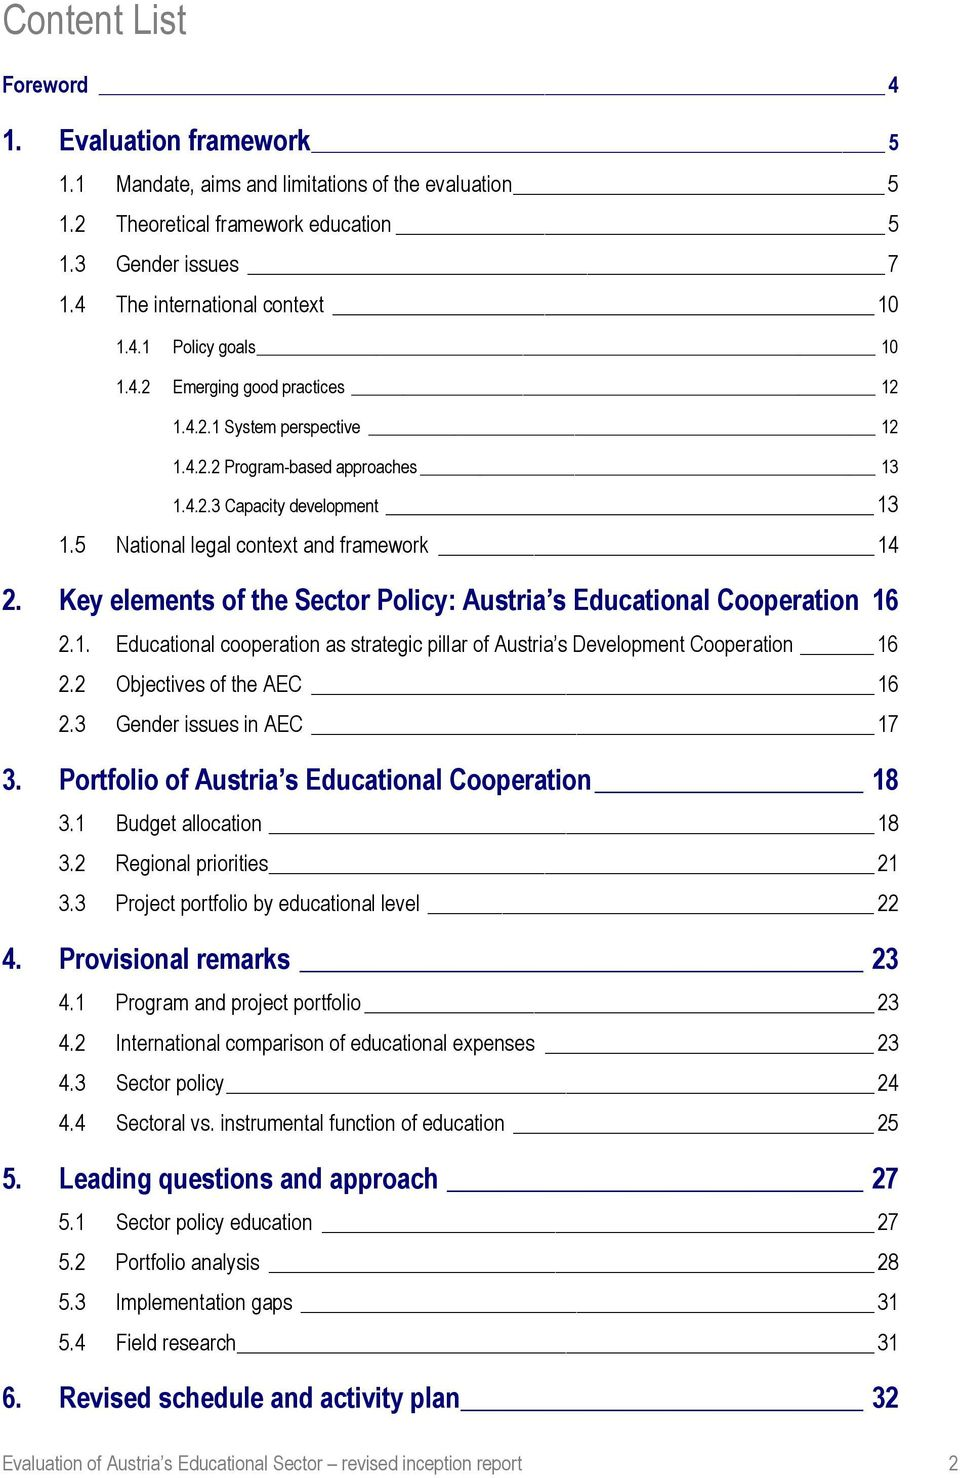 Key elements of the Sector Policy: Austria s Educational Cooperation 16 2.1. Educational cooperation as strategic pillar of Austria s Development Cooperation 16 2.2 Objectives of the AEC 16 2.